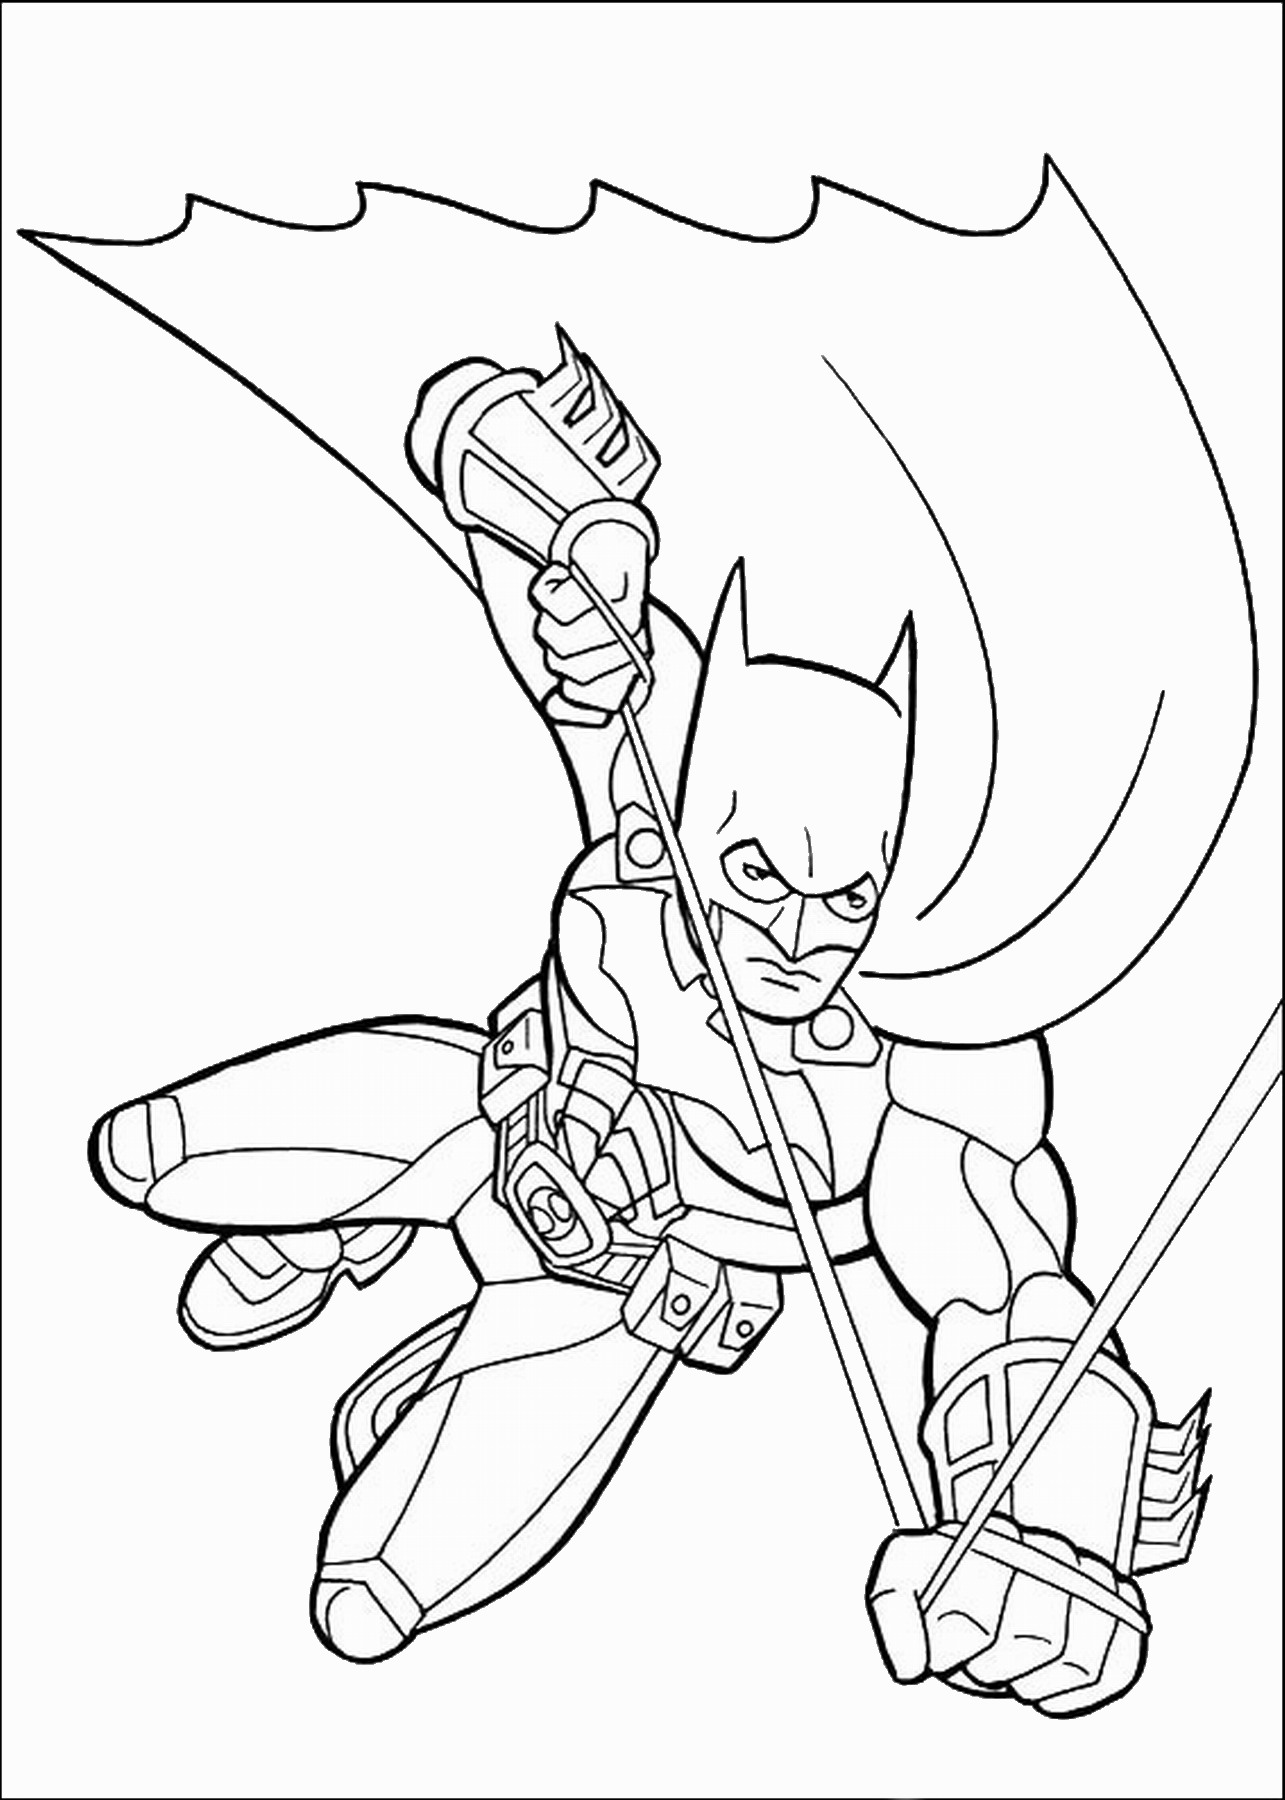 batman colouring sheet kids n funcom 72 coloring pages of batman batman colouring sheet 1 1